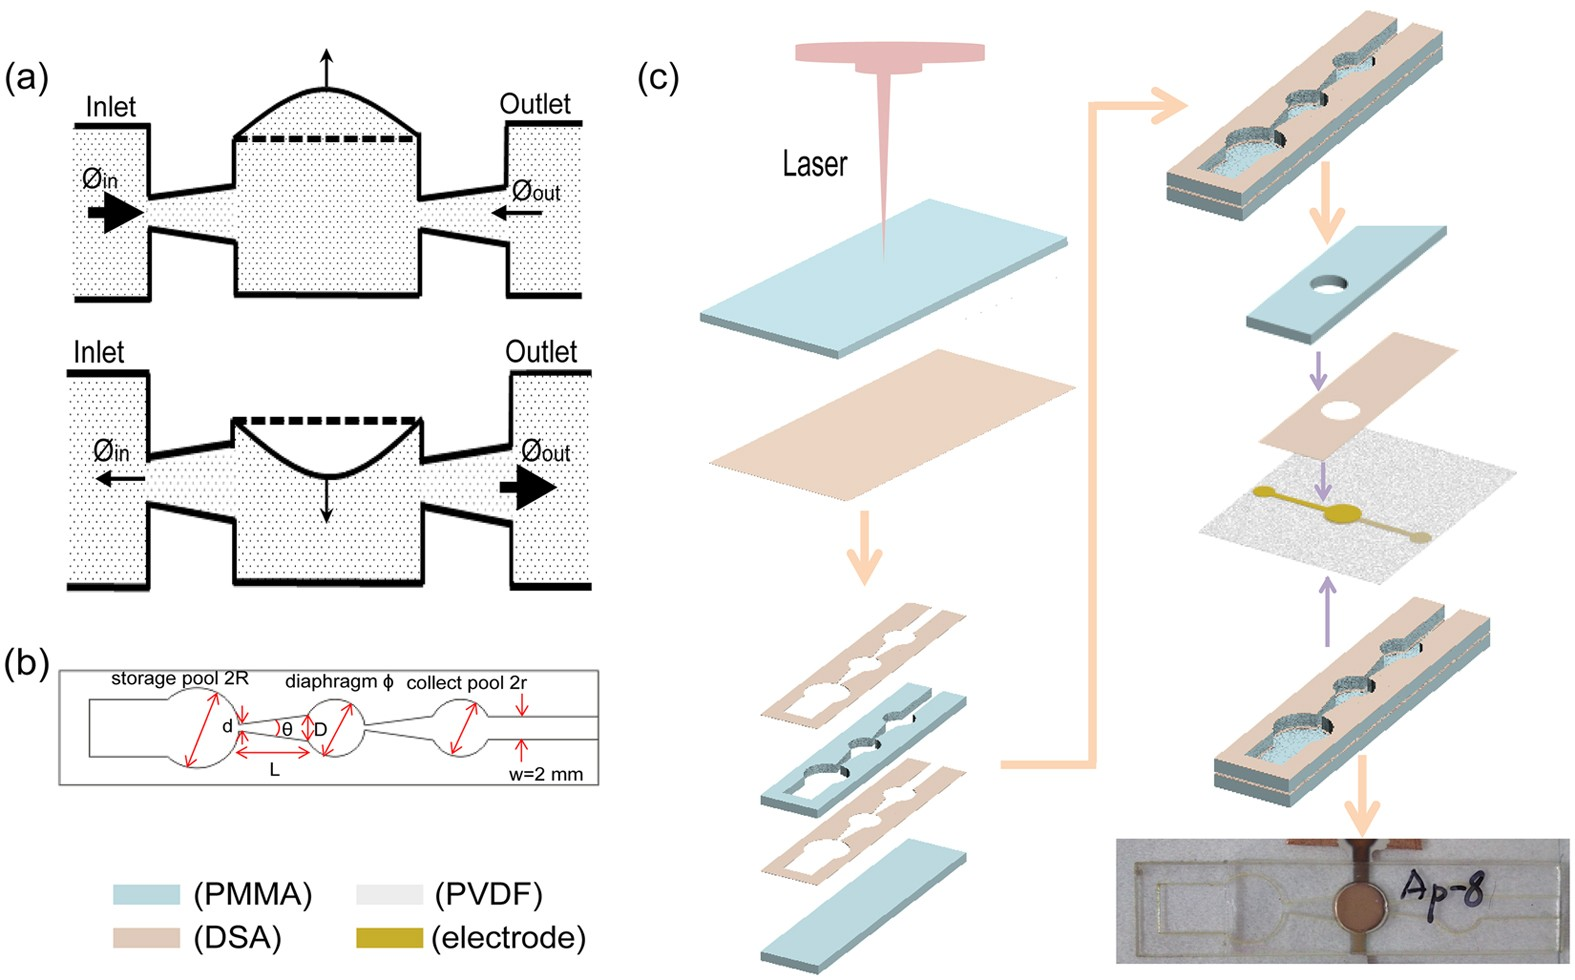 Pump Low Voltage Wiring Diagram Additionally 3 Phase Motor A Controllable And Integrated Enabled Microfluidic Chip Its Application In Droplets Generating Scientific Reports